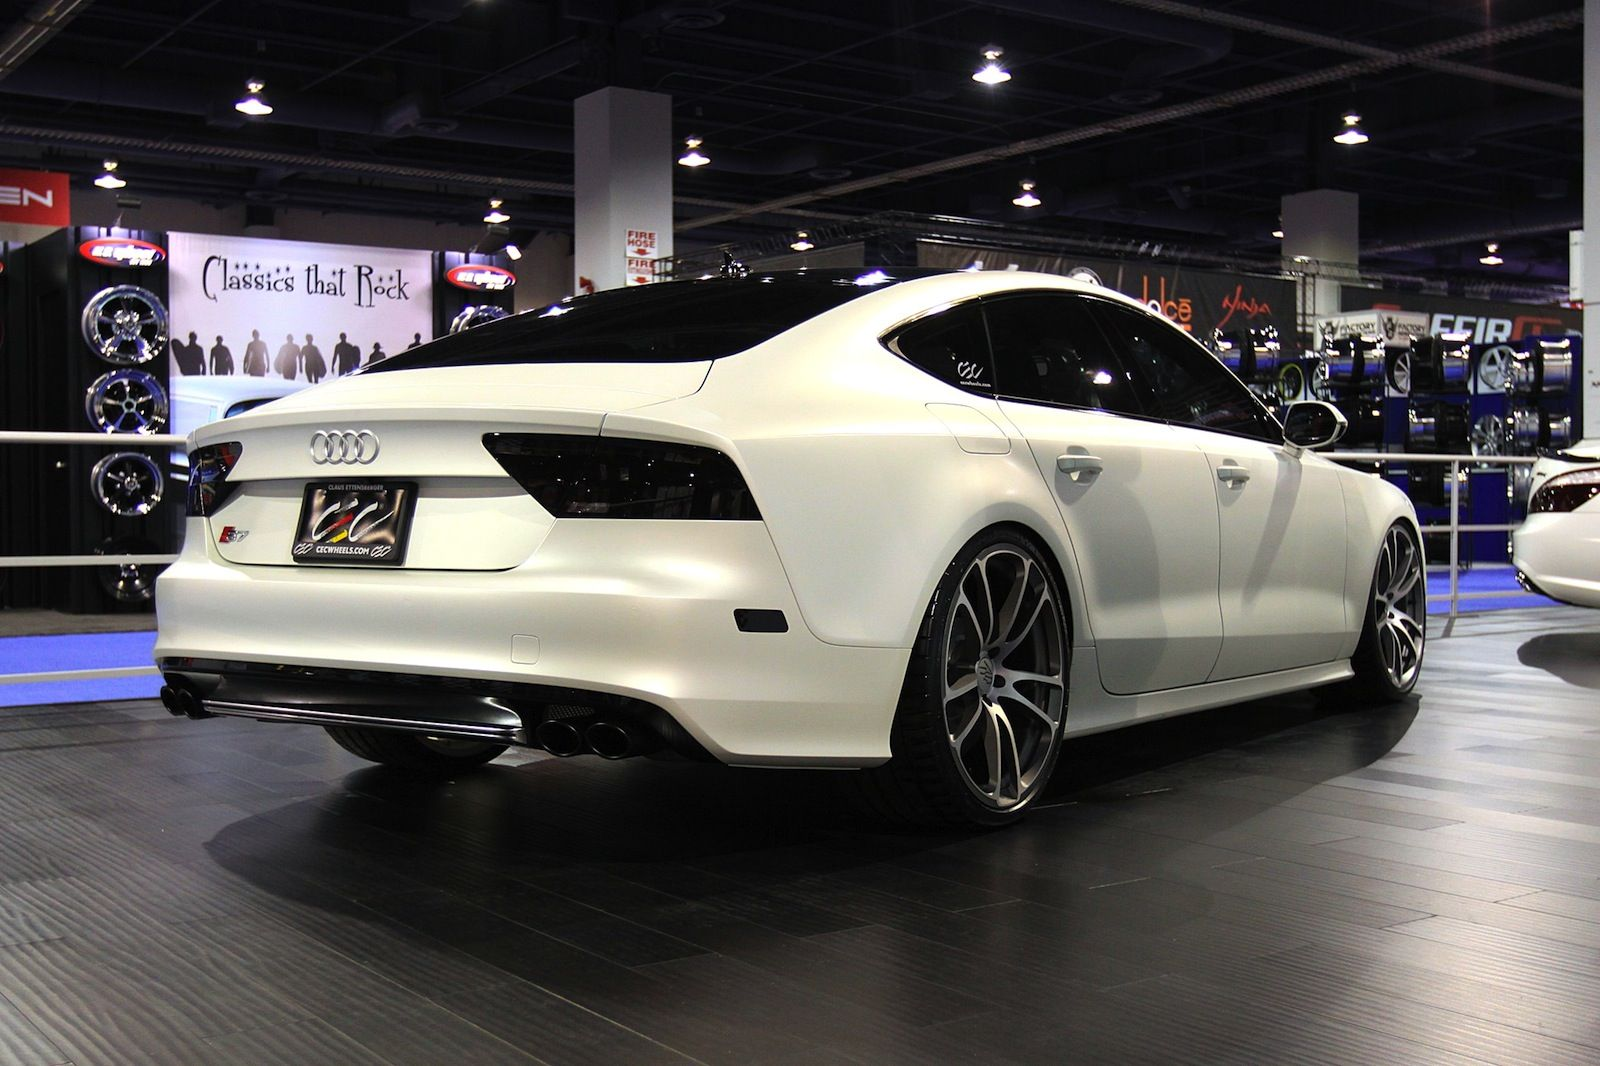 Merveilleux White Audi A7 Wallpaper